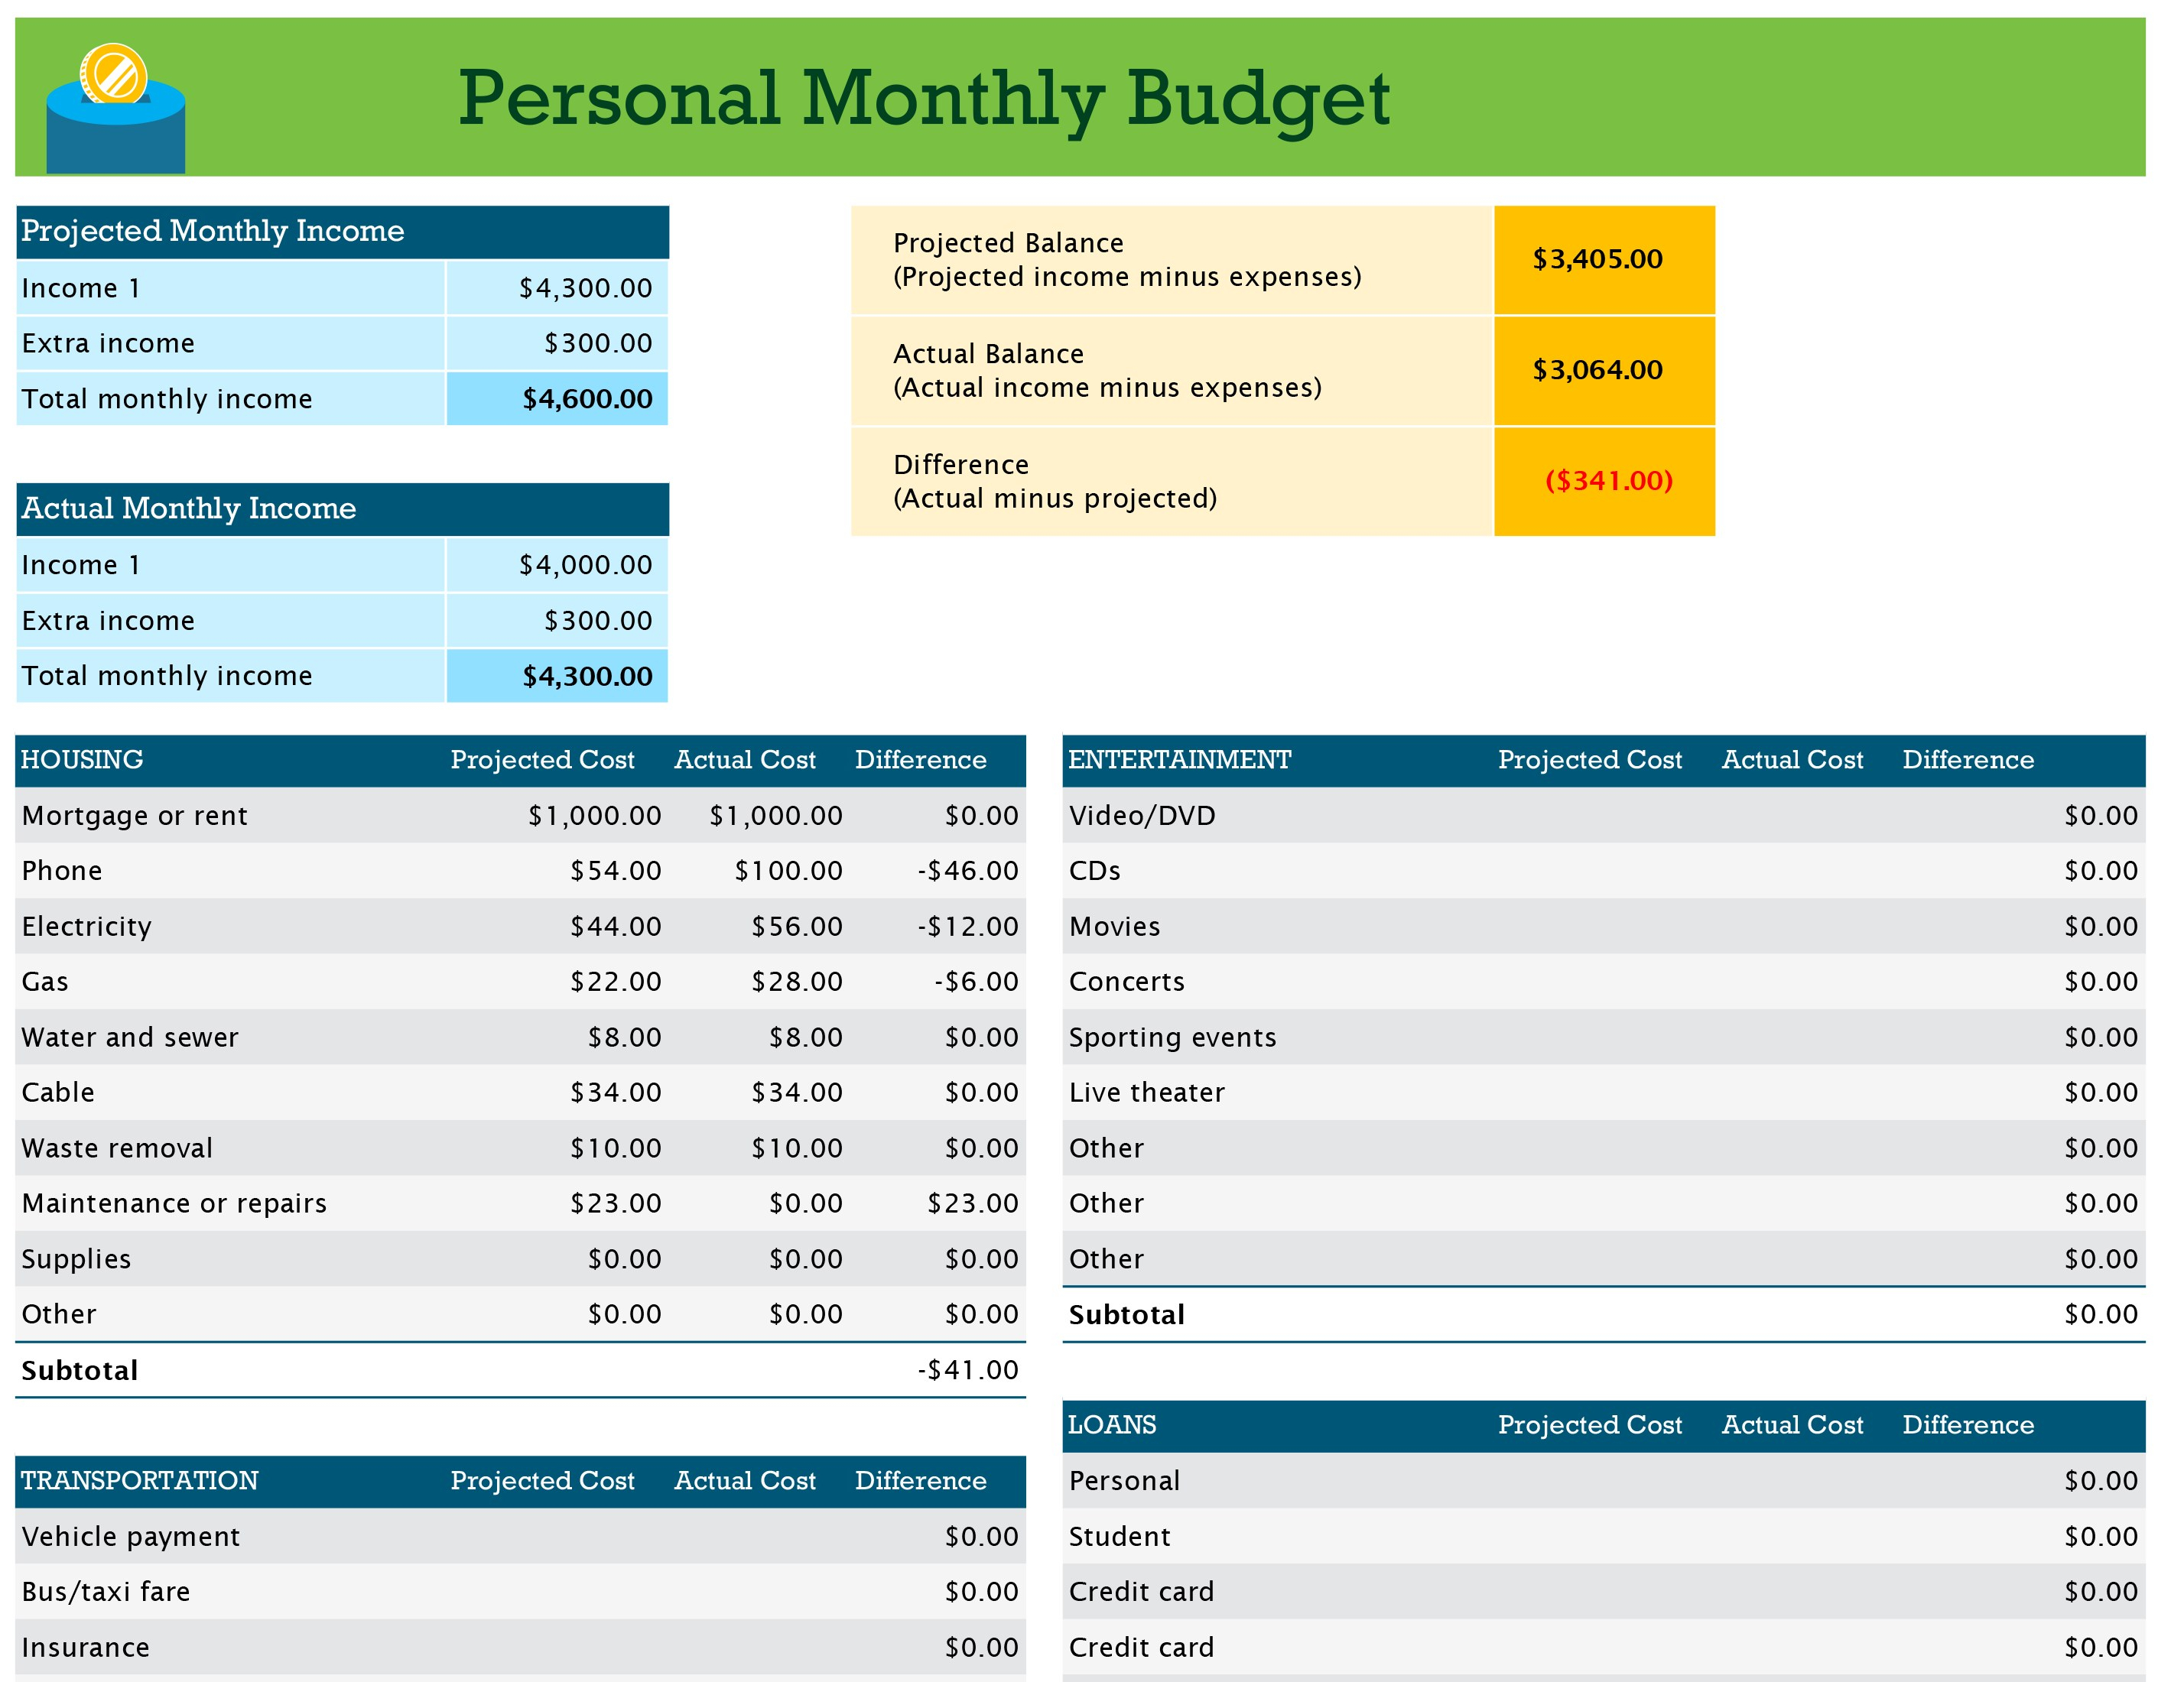 Excel Spreadsheet For Monthly Bills Within Personal Monthly Budget Excel Excel Spreadsheet For Monthly Bills Google Spreadshee Google Spreadshee free excel spreadsheet for monthly bills